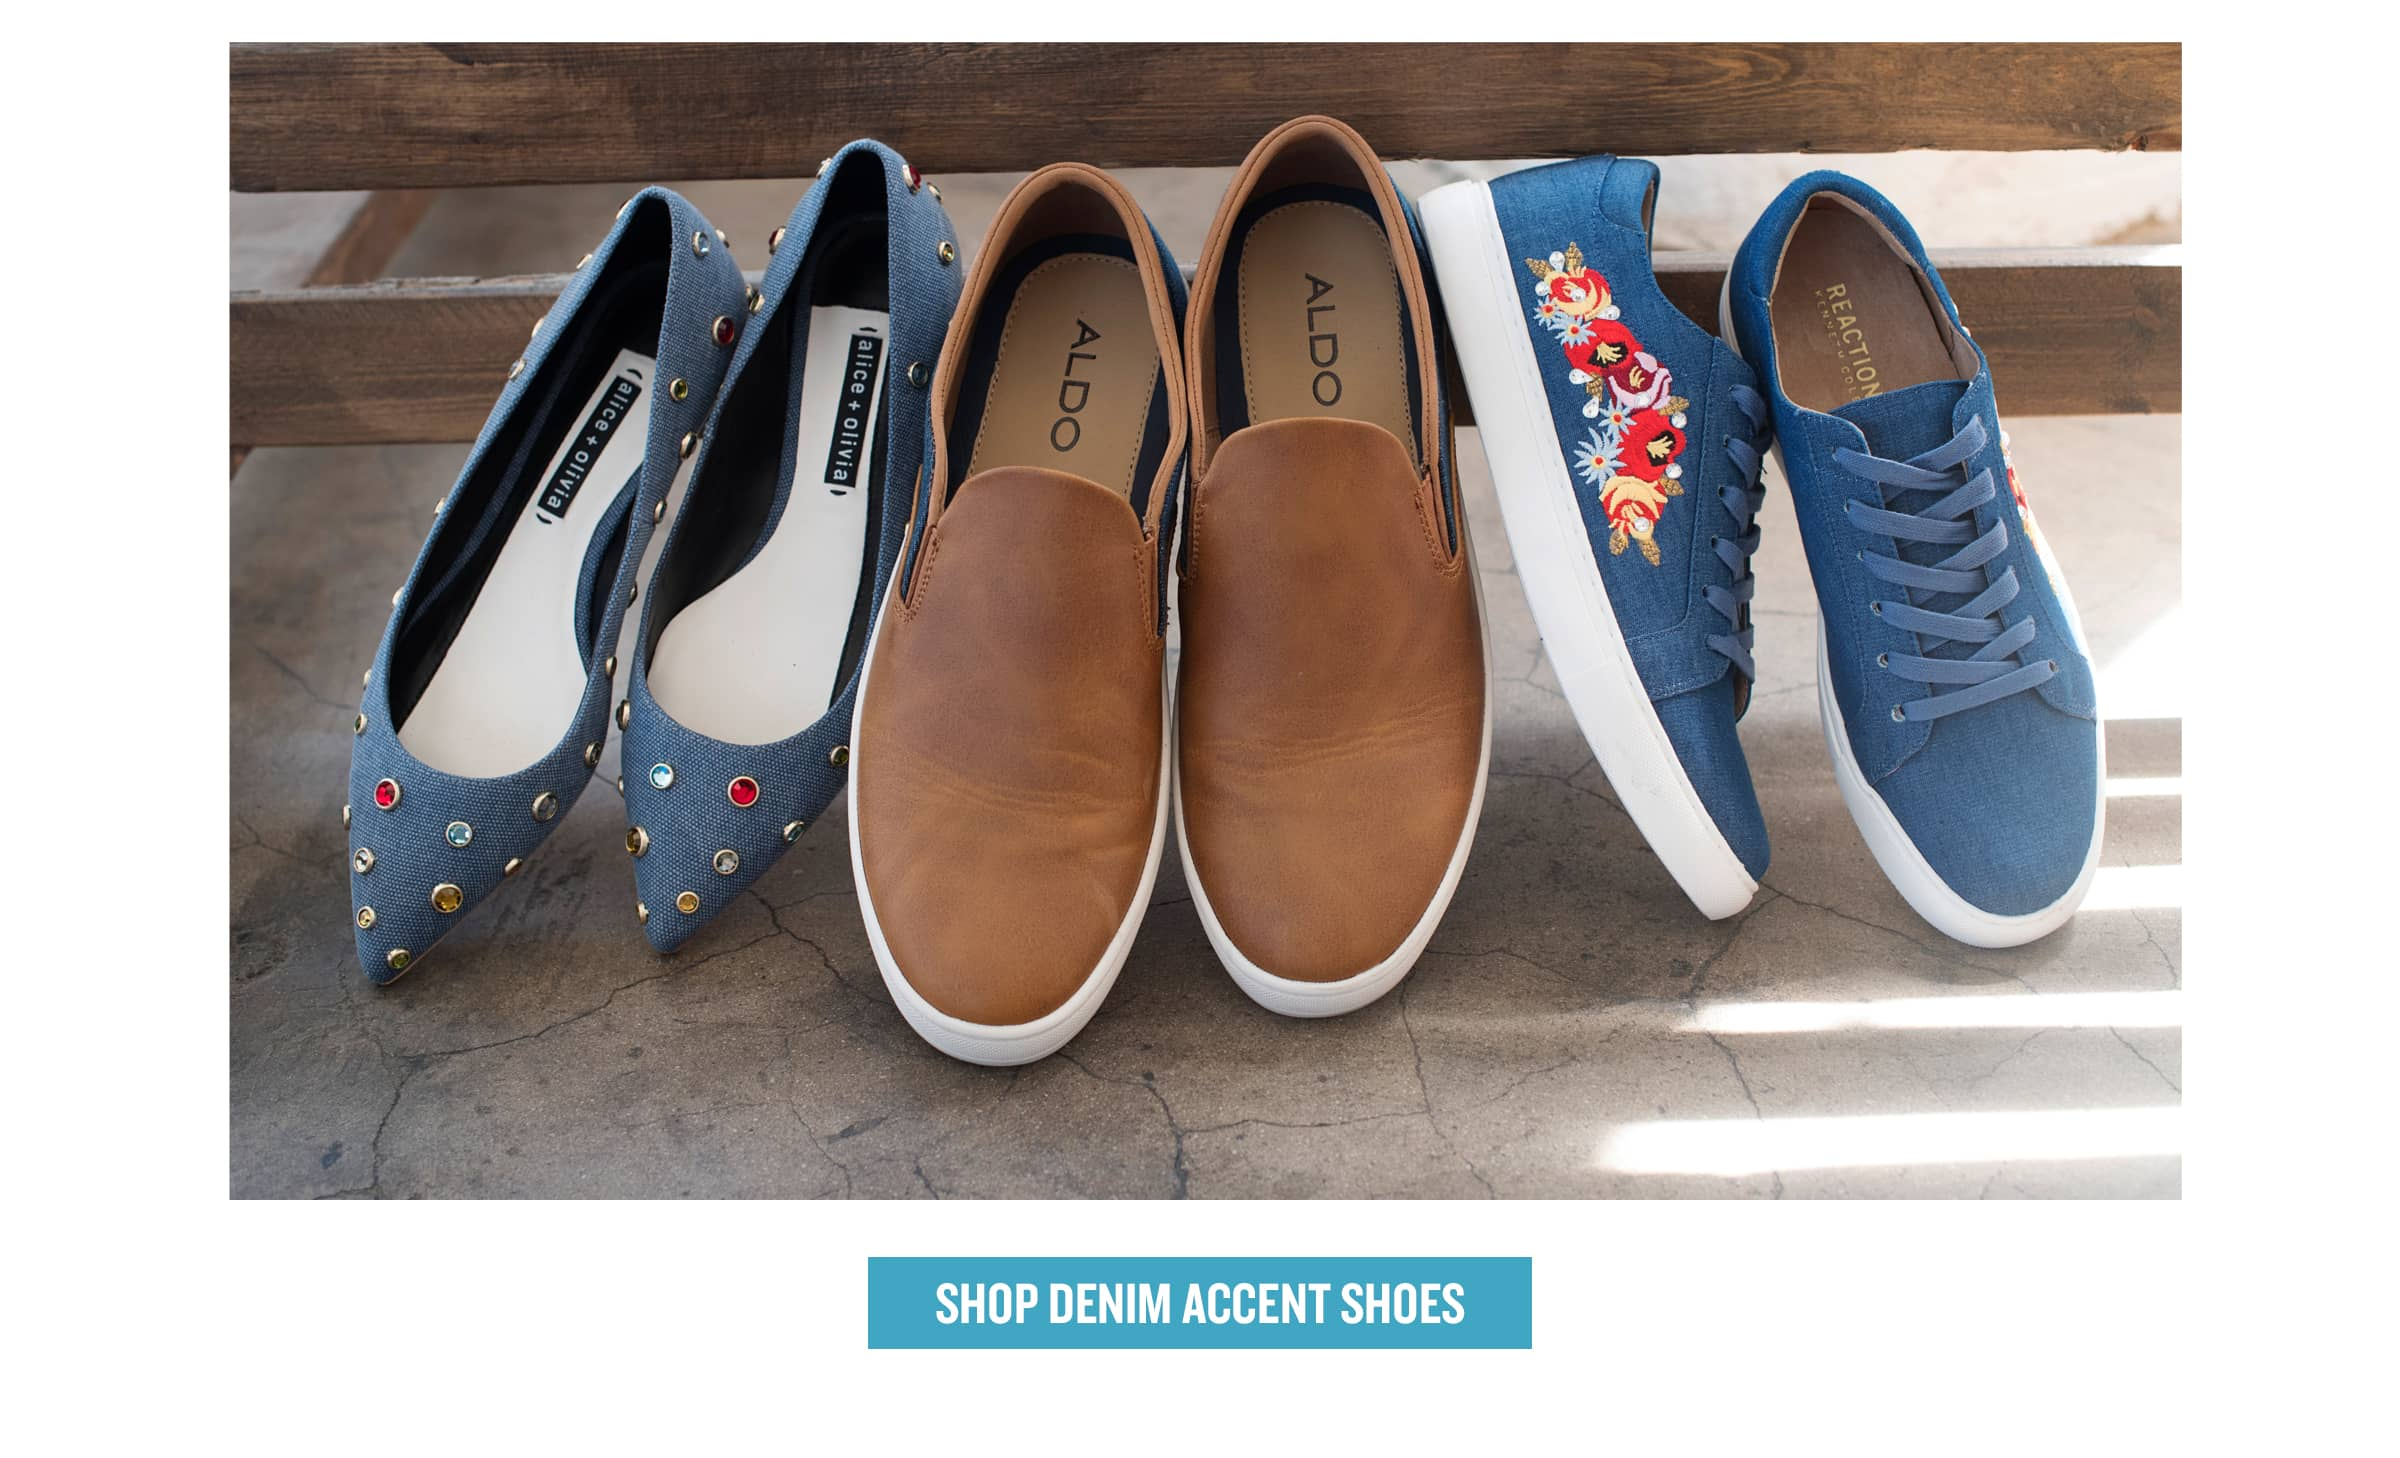 Shoes with denim accents